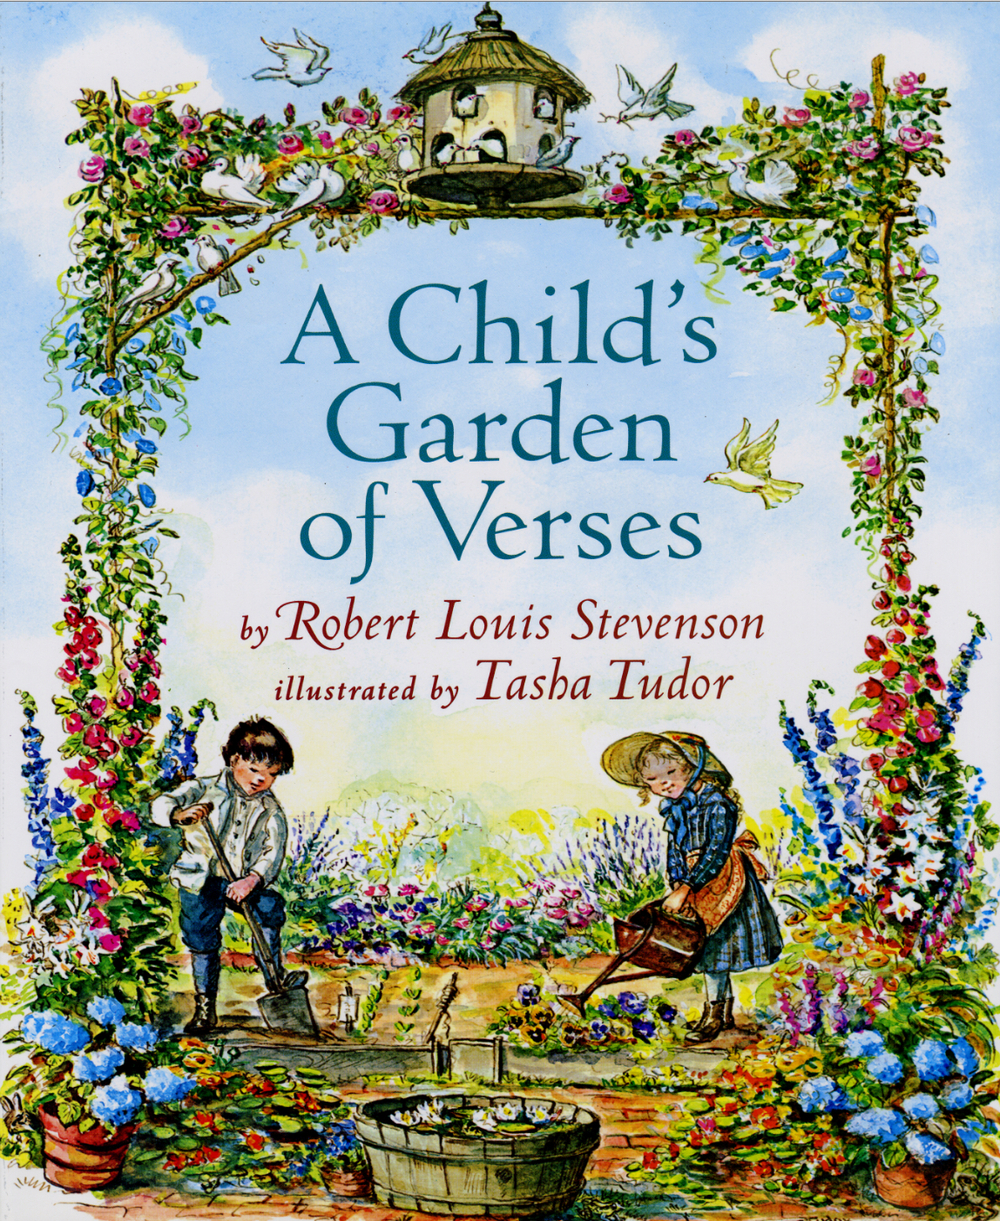 A Child's Garden of Verses, by Robert Louis Stephenson; illustrated by Tasha Tudor